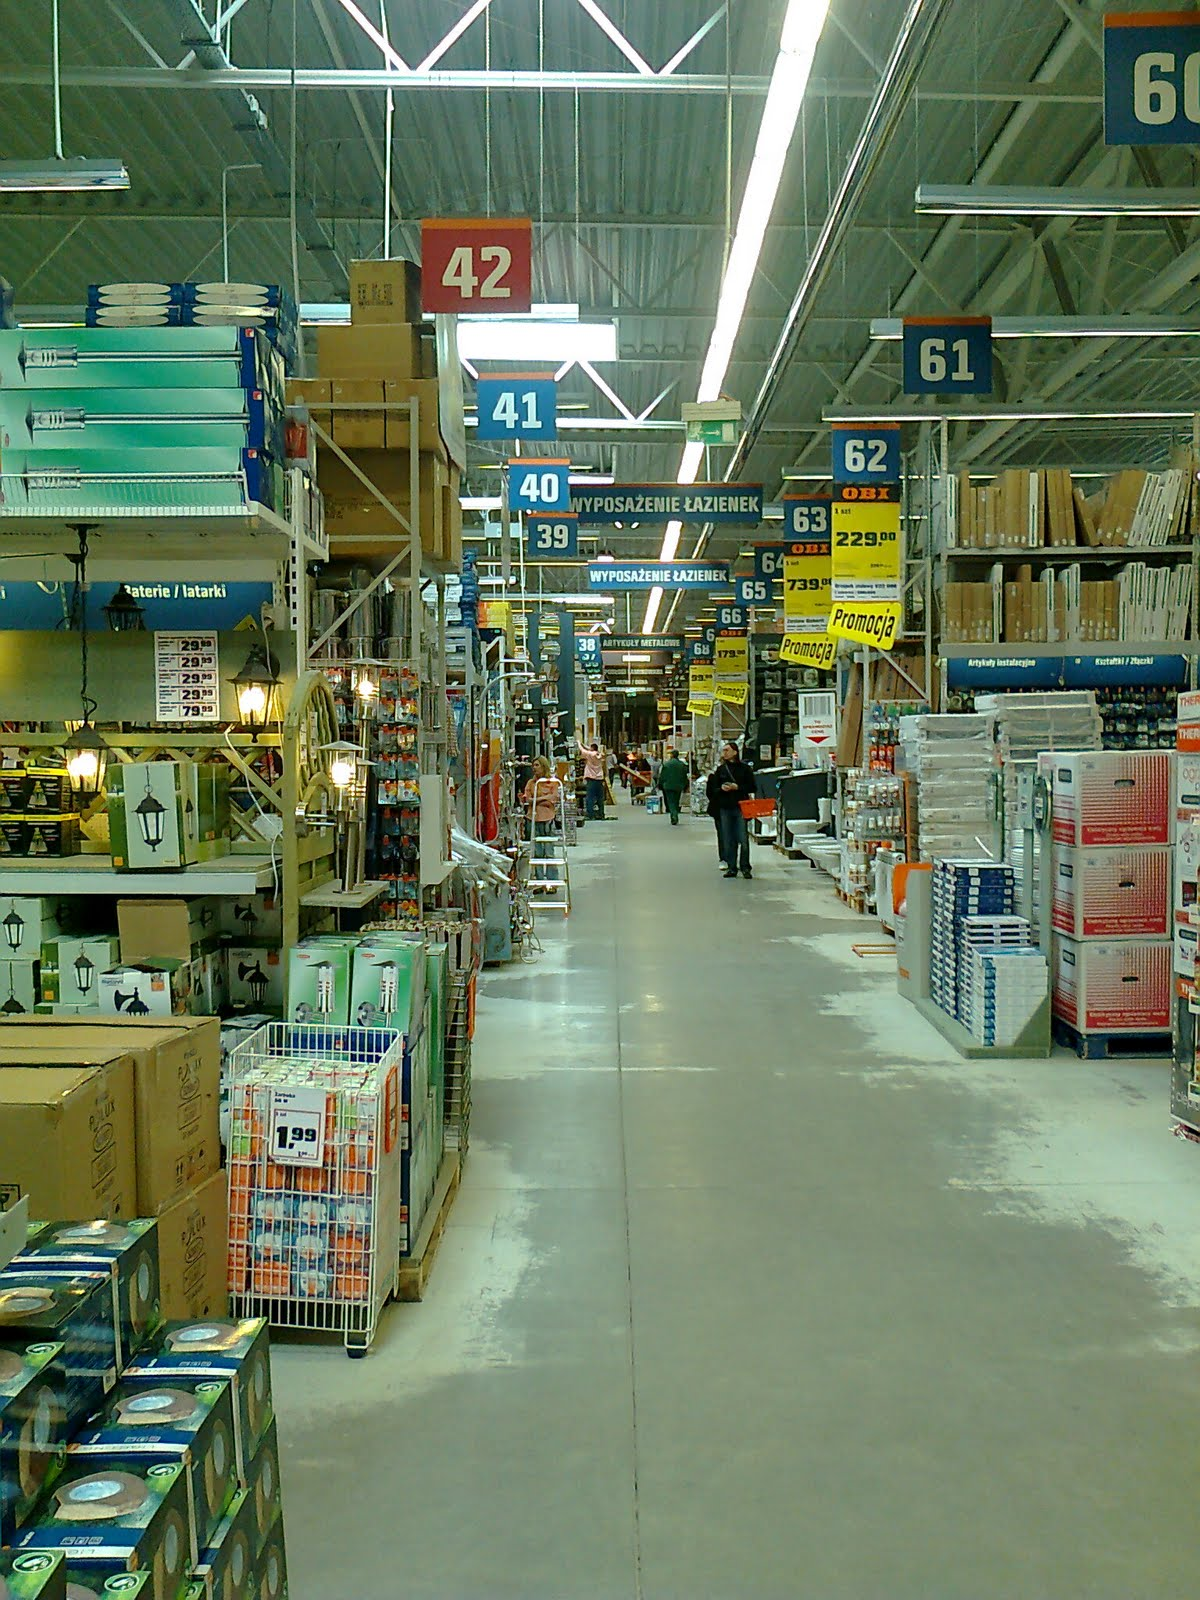 home improvement store look like here in lublin just like home depot ...